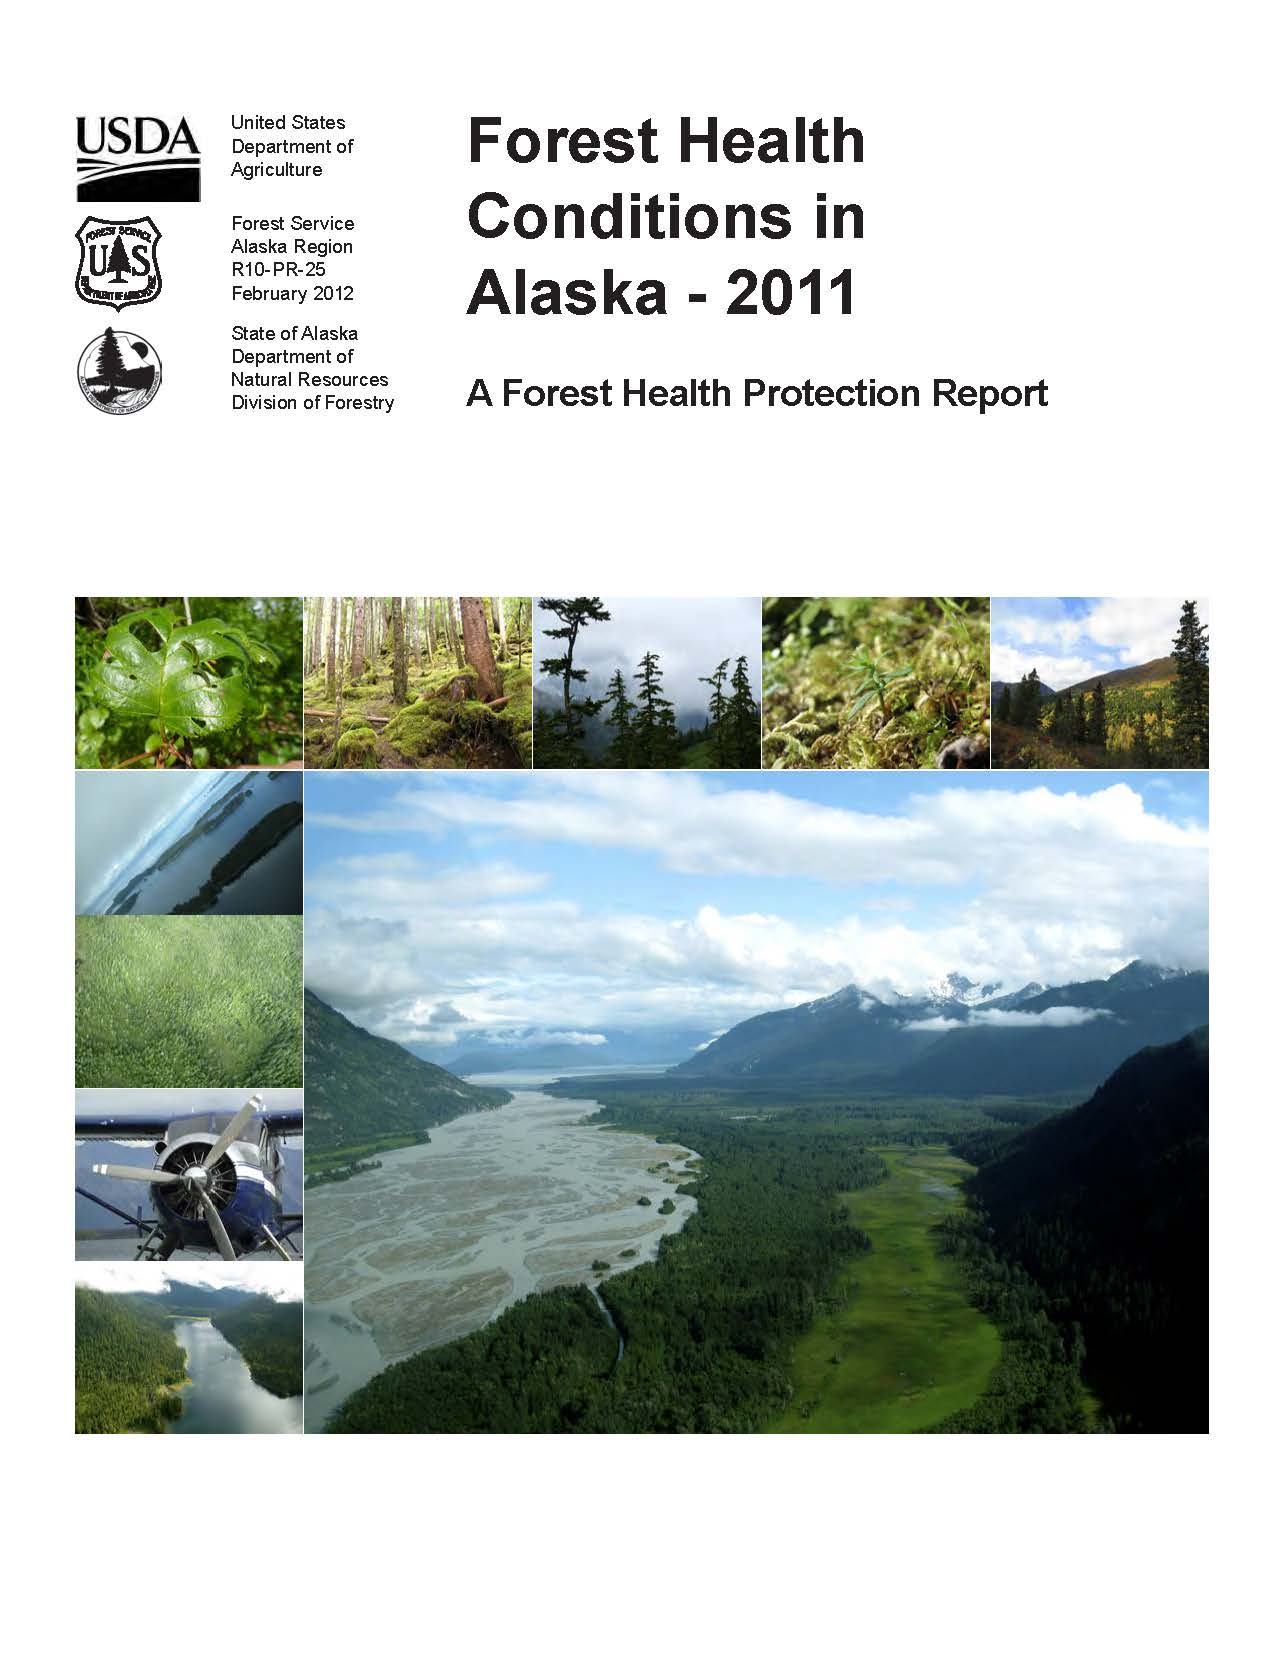 This image shows the cover of the 2011 Condition Report